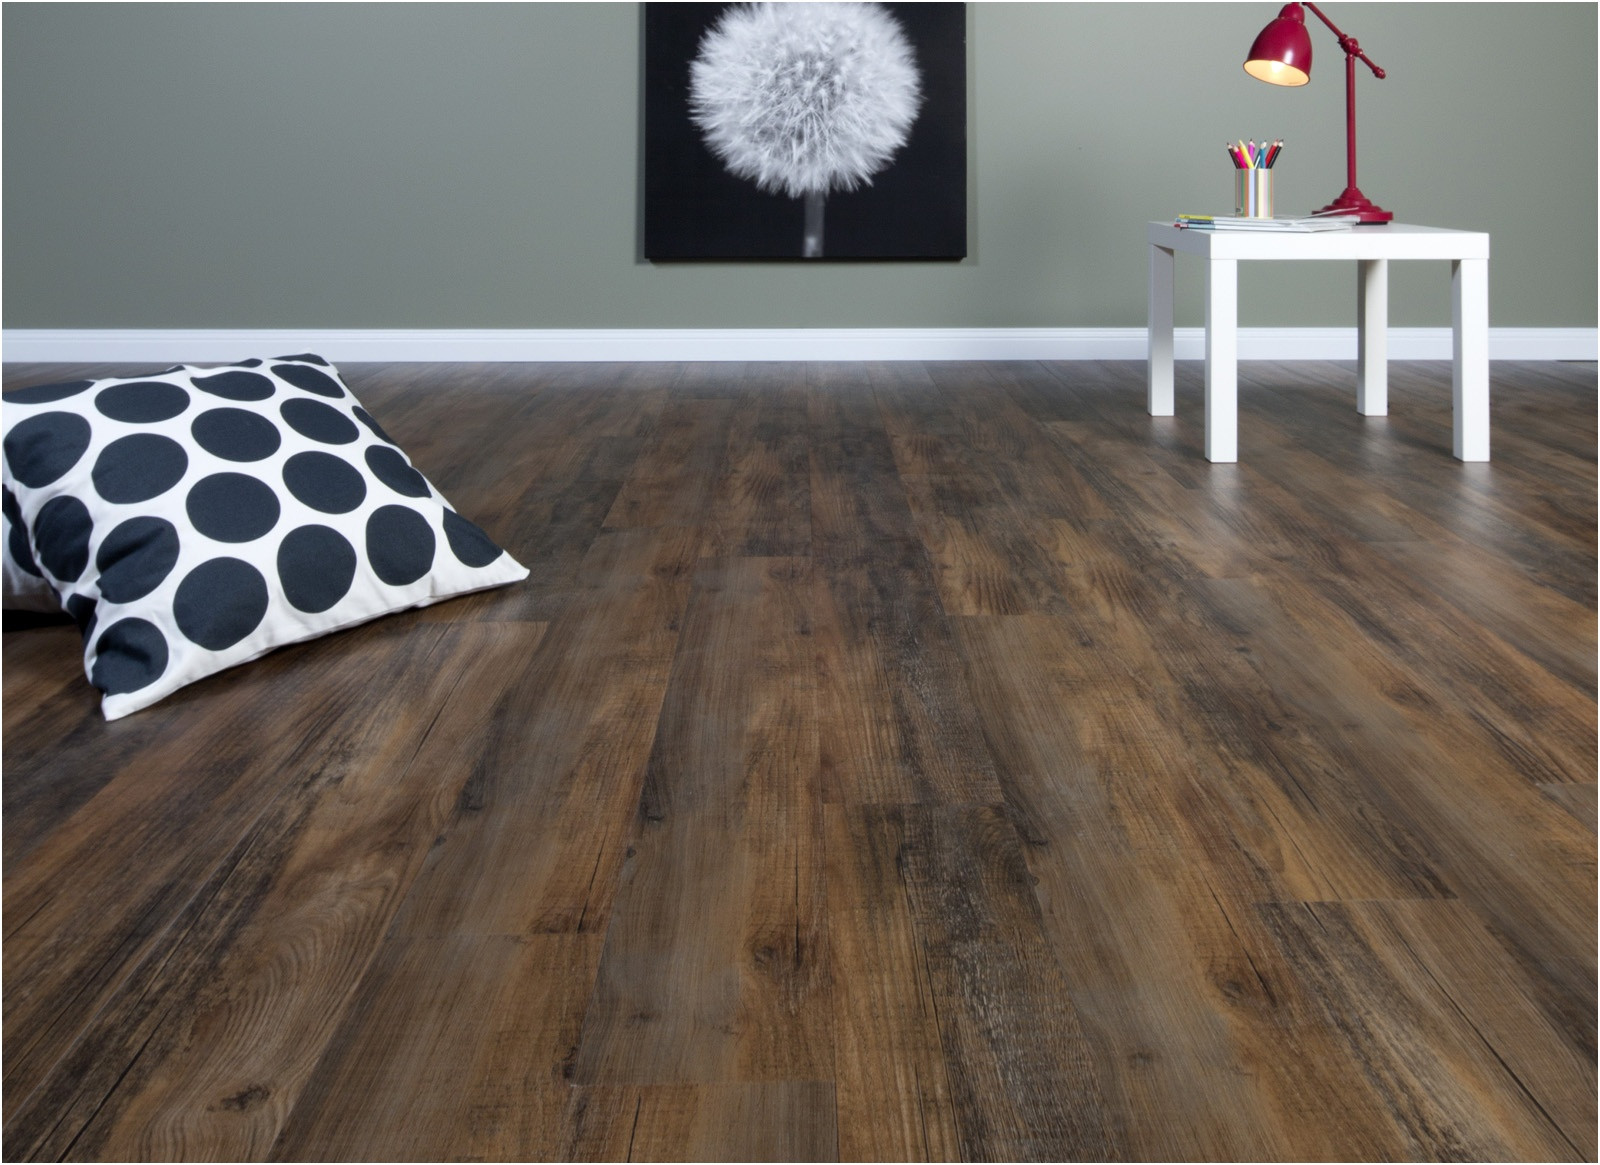 vinyl flooring like hardwood of high quality vinyl flooring with luxury plank lowes collection and pertaining to high quality vinyl flooring with luxury plank lowes collection and galerie floor for bat designs awesomeod ideas of